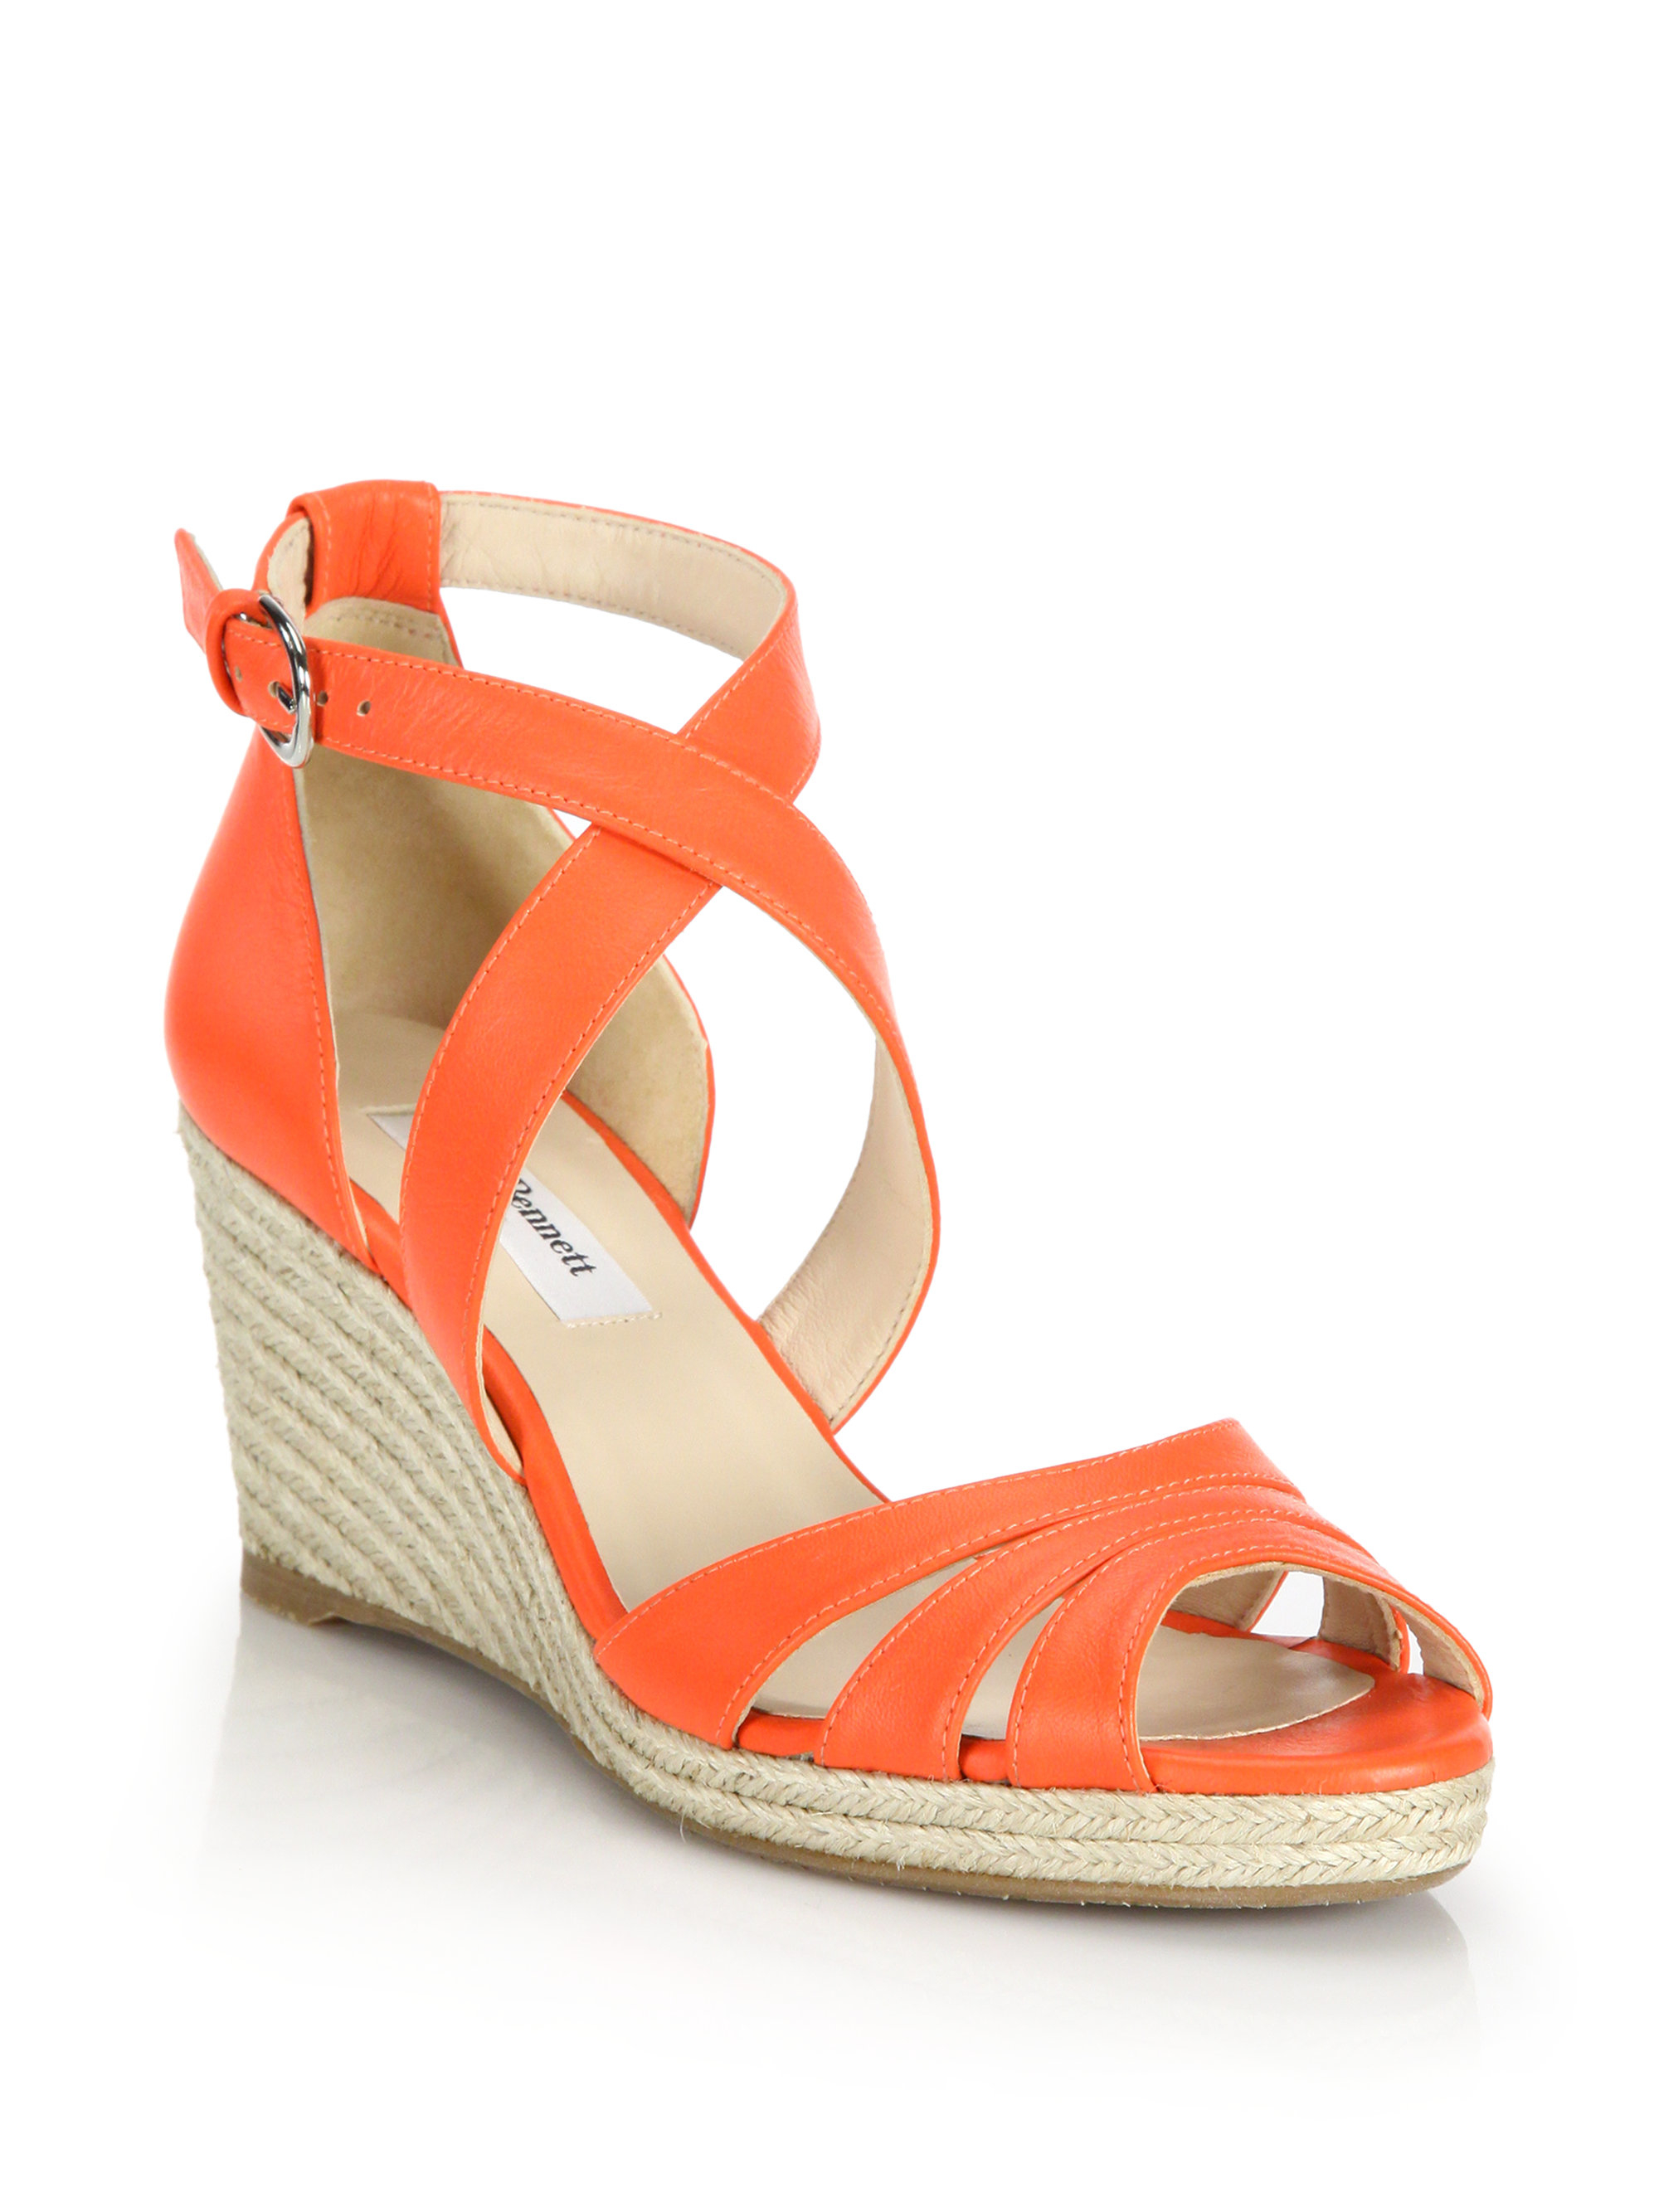 6b4ae46f954 Lyst - L.K.Bennett Priya Leather Espadrille Wedge Sandals in Orange